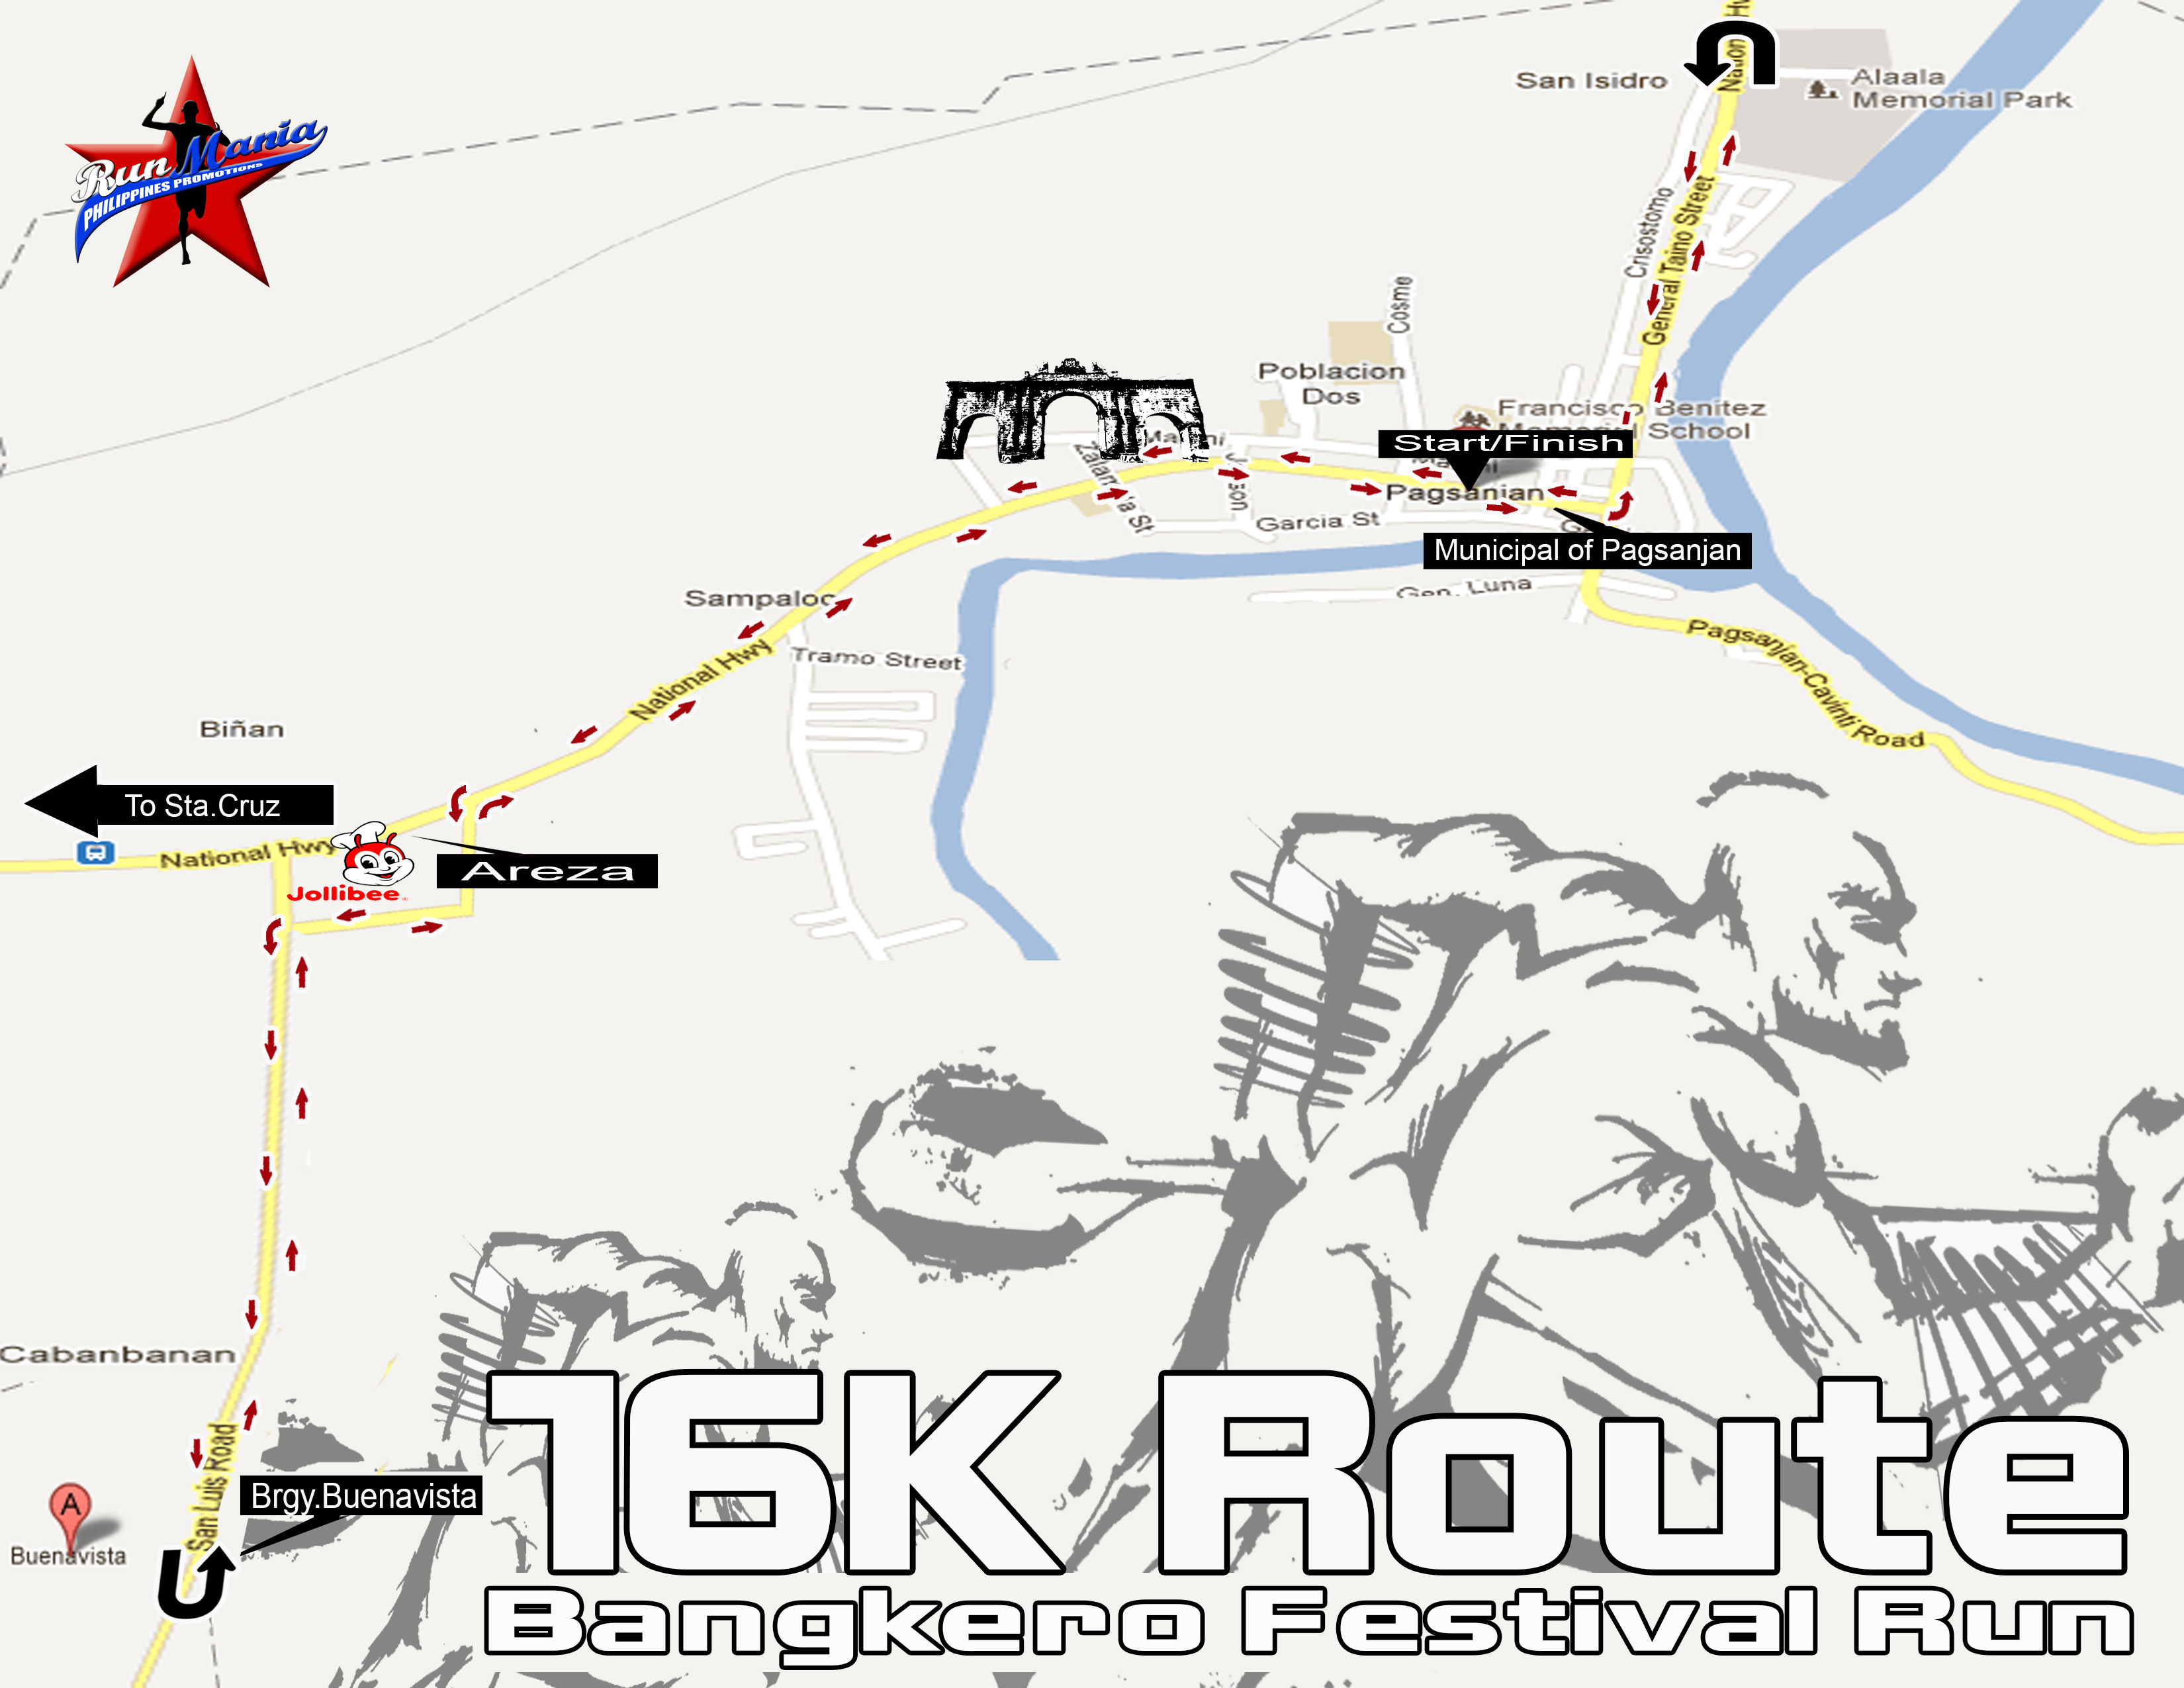 bangkero-festival-run-2013-16k-route-map